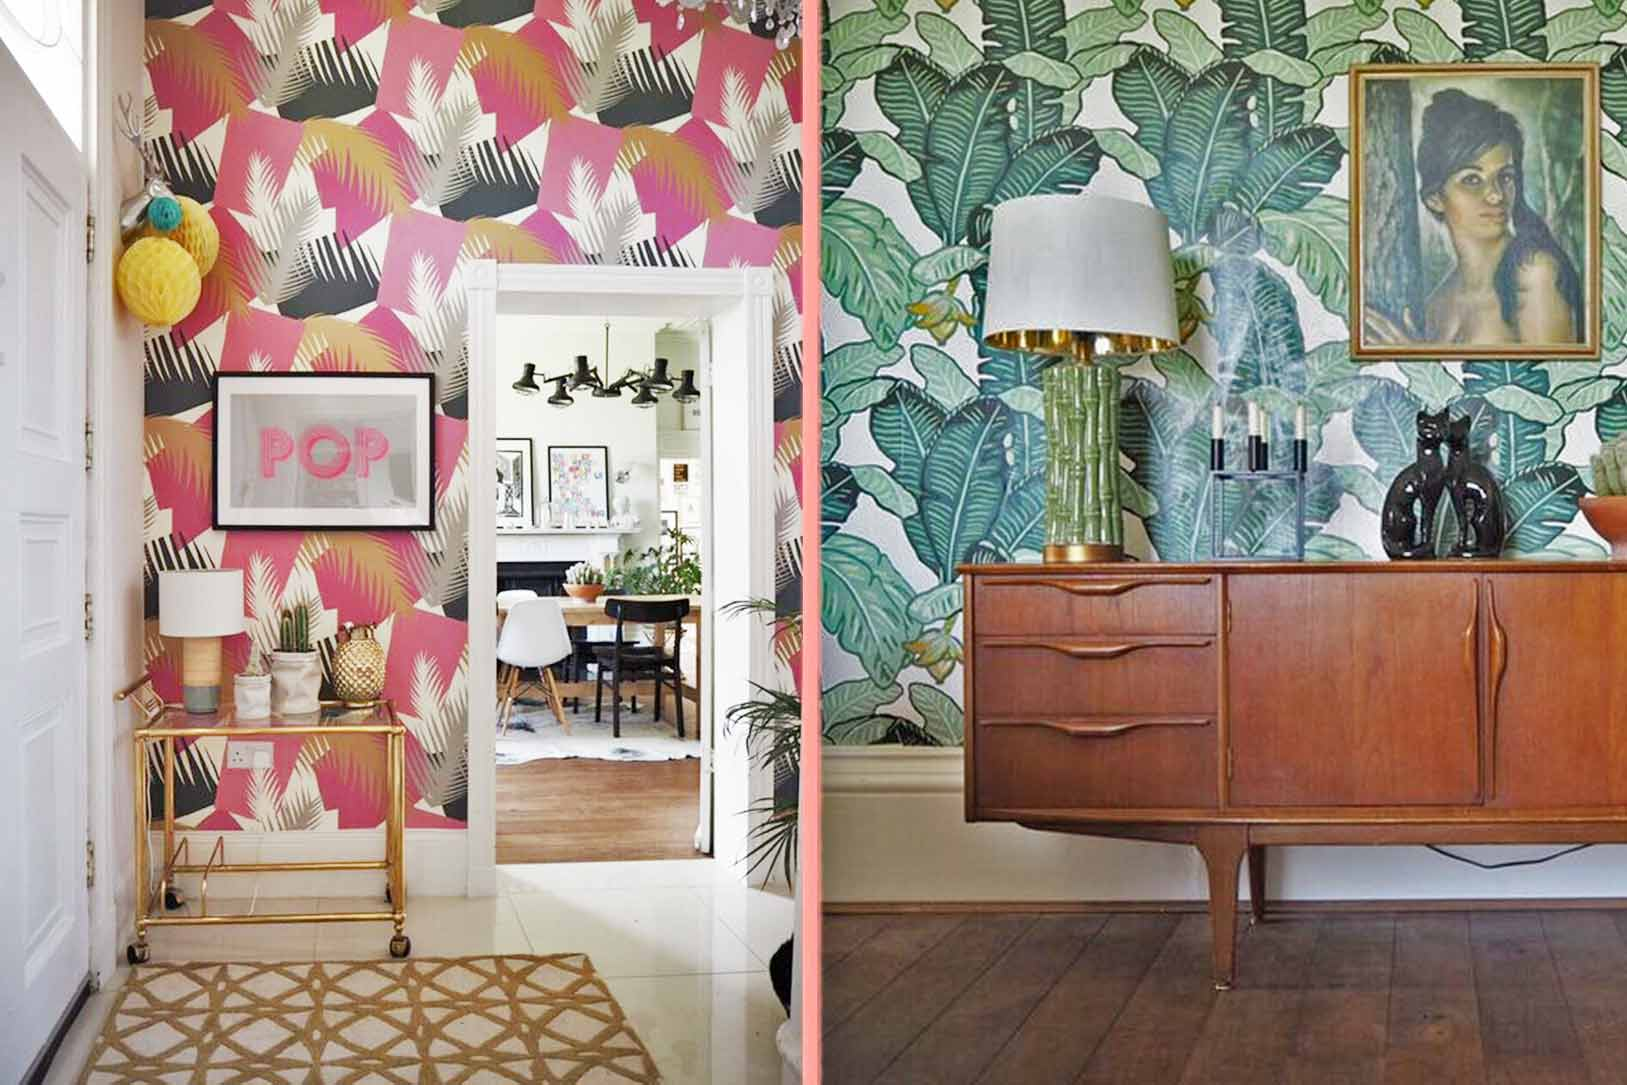 Zesty Patterns Mix Up a Historic Home in York, Design*Sponge